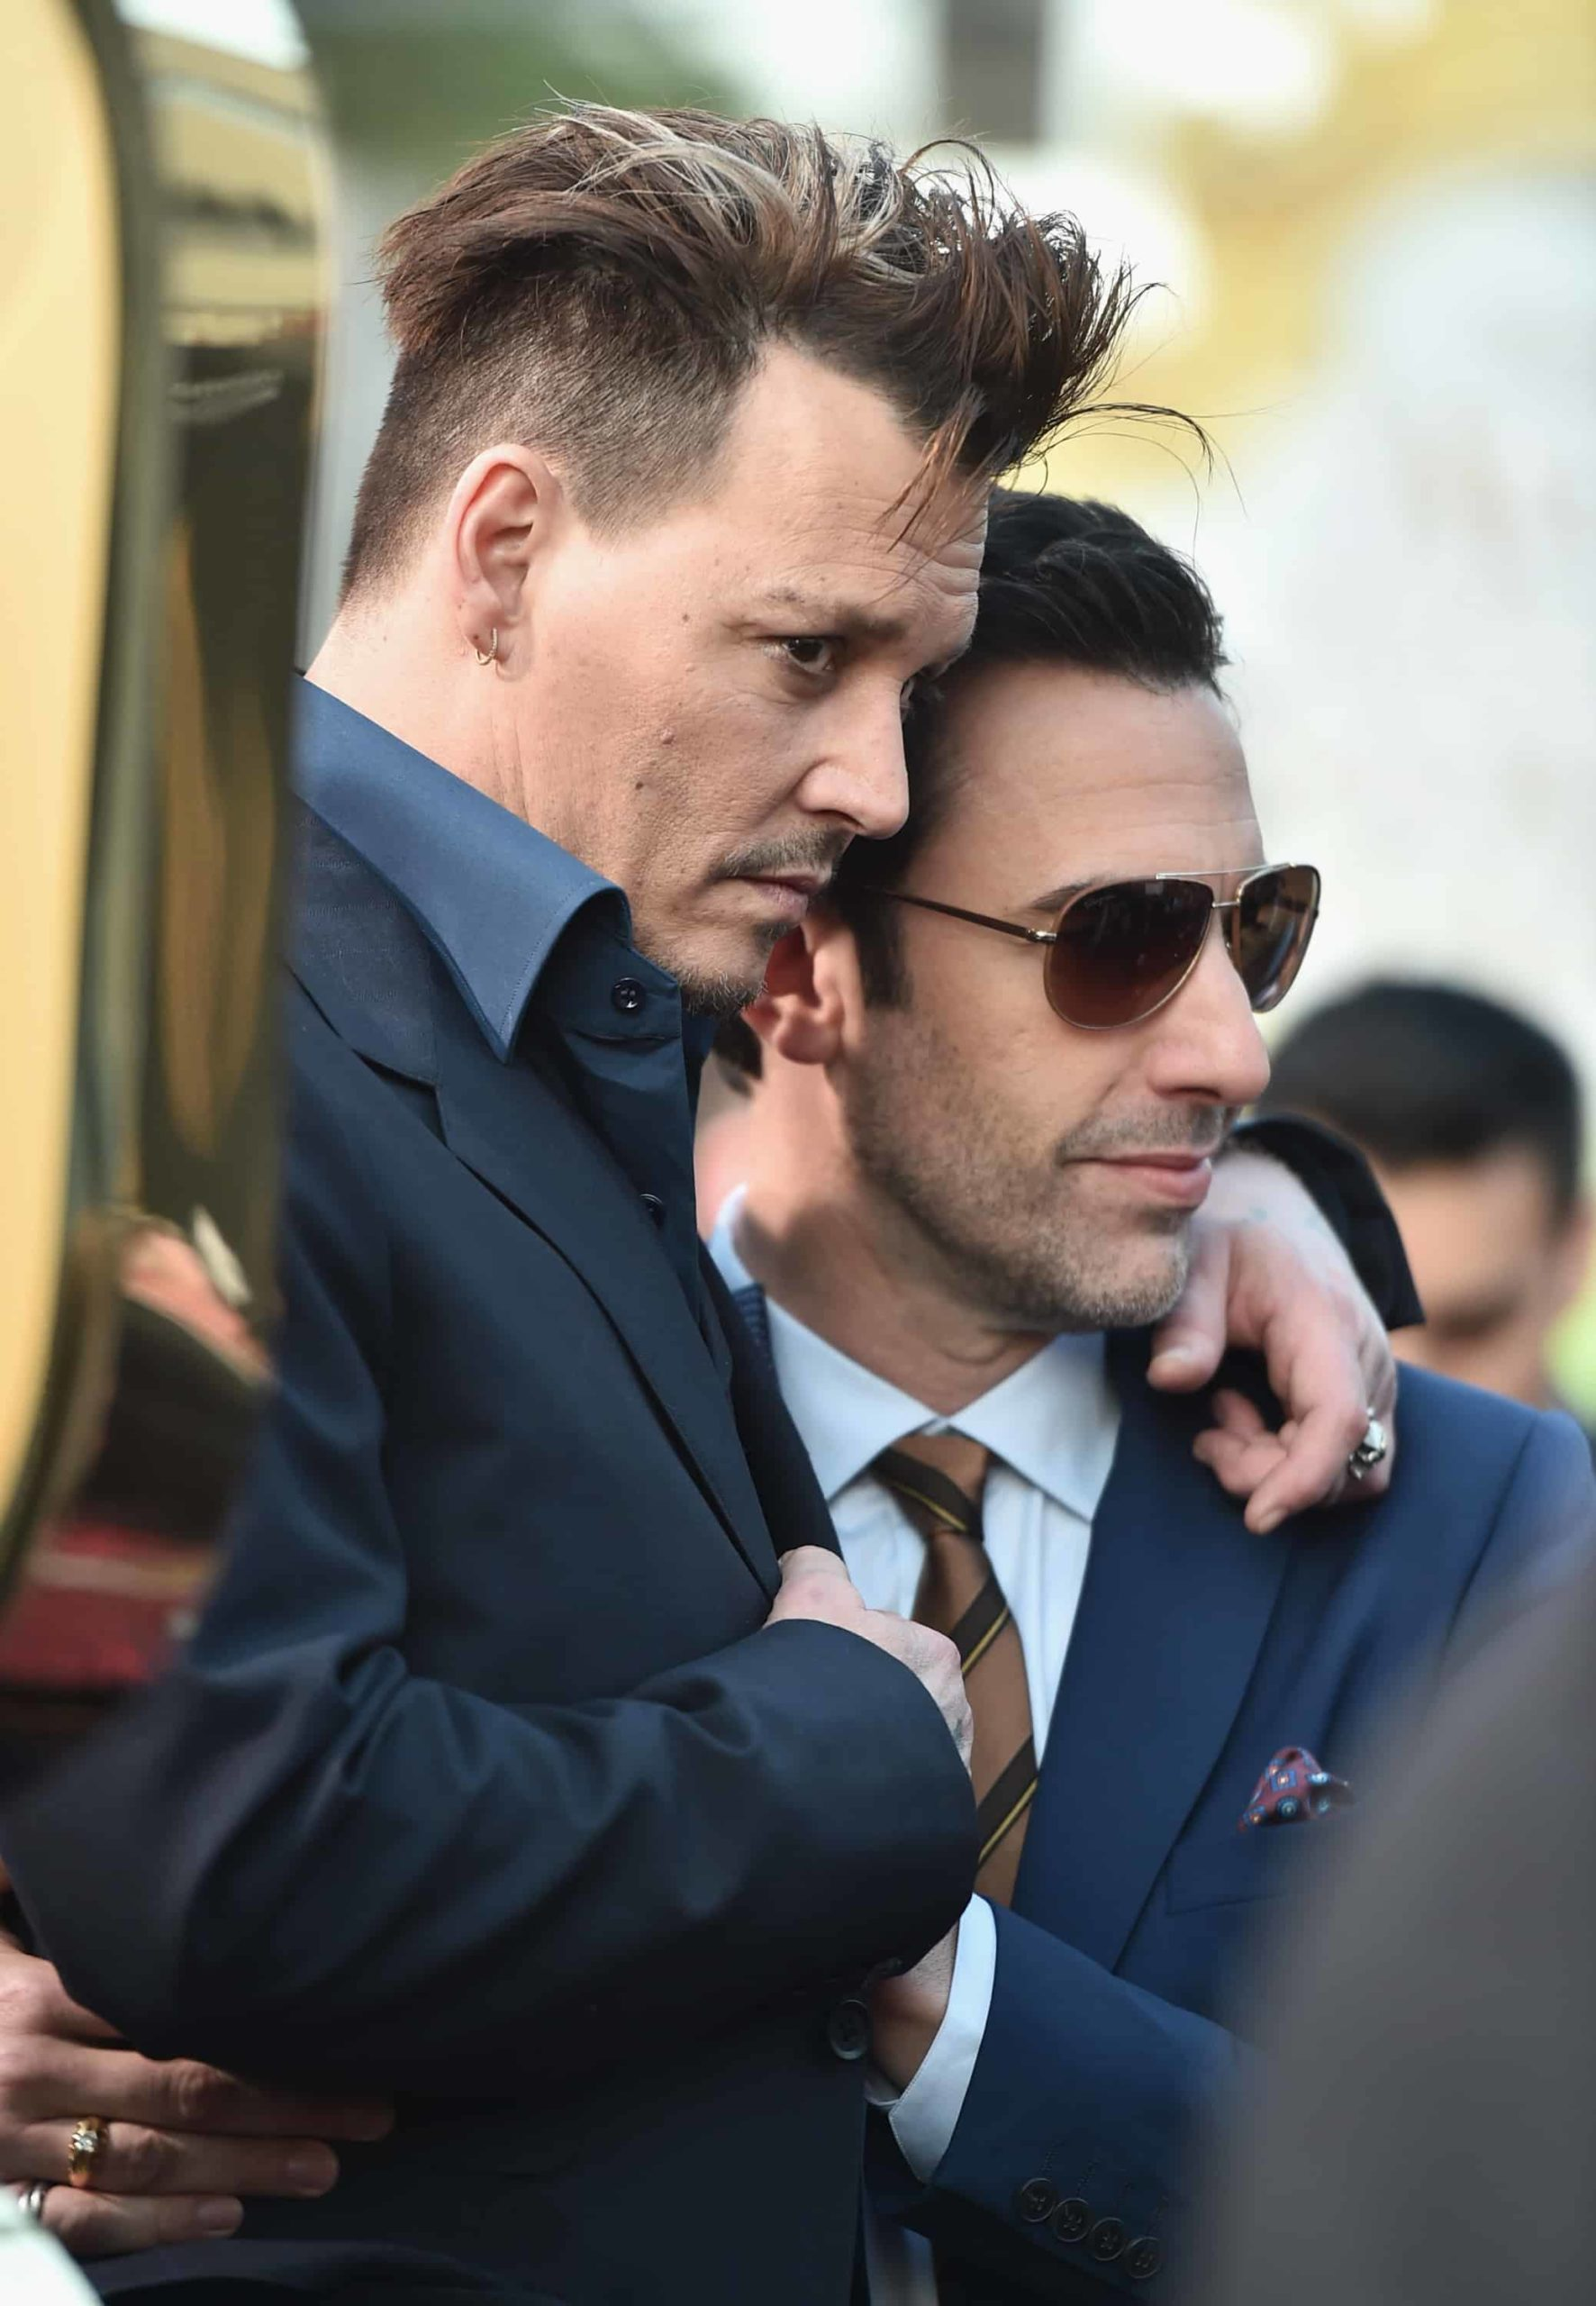 HOLLYWOOD, CA - MAY 23: Actors Johnny Depp and Sacha Baron Cohen attend Disney's 'Alice Through the Looking Glass' premiere with the cast of the film, which included Johnny Depp, Anne Hathaway, Mia Wasikowska and Sacha Baron Cohen at the El Capitan Theatre on May 23, 2016 in Hollywood, California. (Photo by Alberto E. Rodriguez/Getty Images for Disney) *** Local Caption *** Johnny Depp; Sacha Baron Cohen